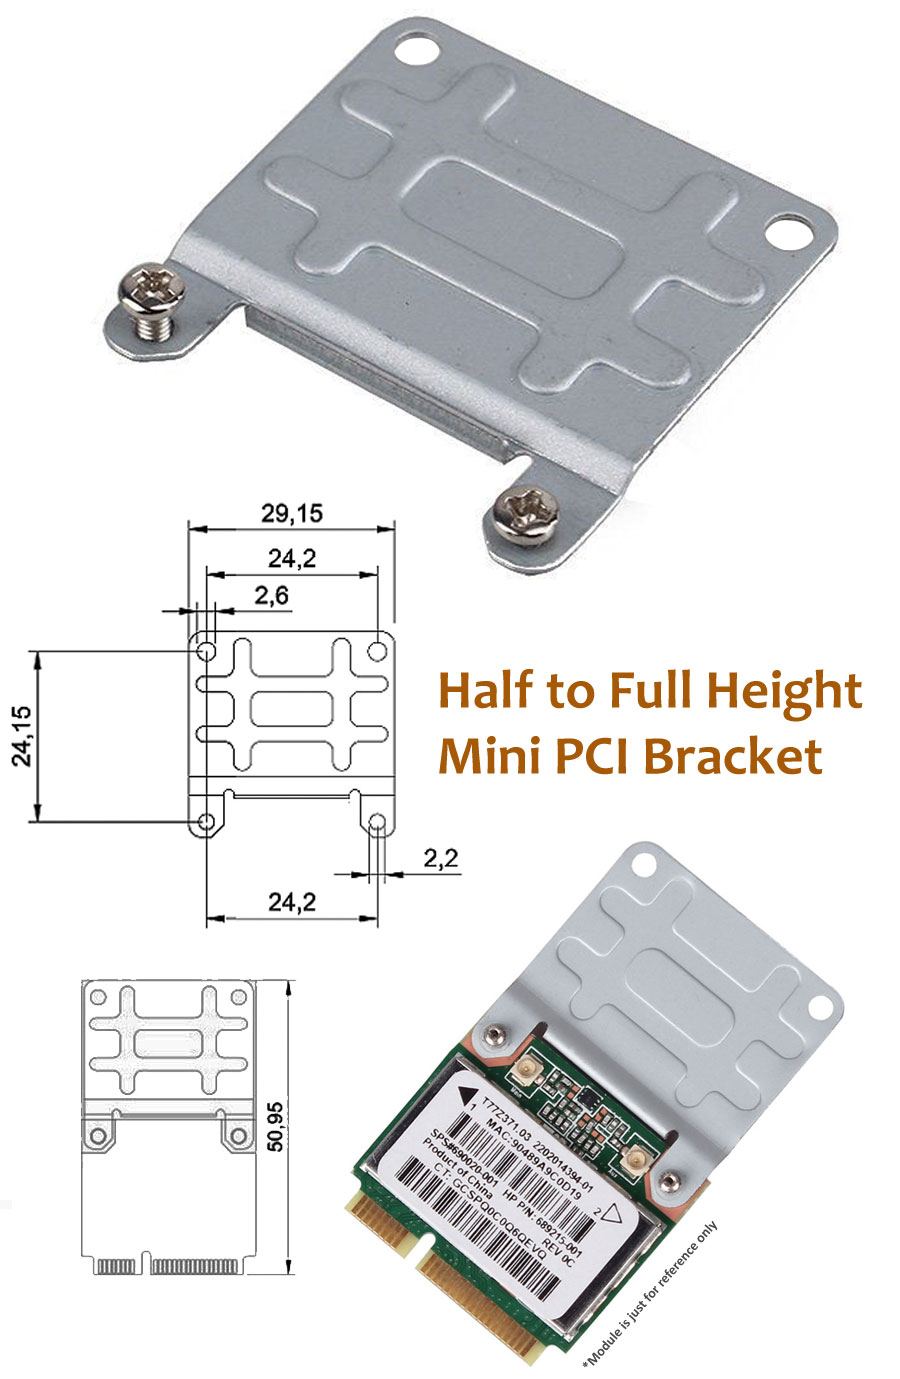 Half to Full Height Mini PCIe Extension Card Bracket - TPEL-001 | Image